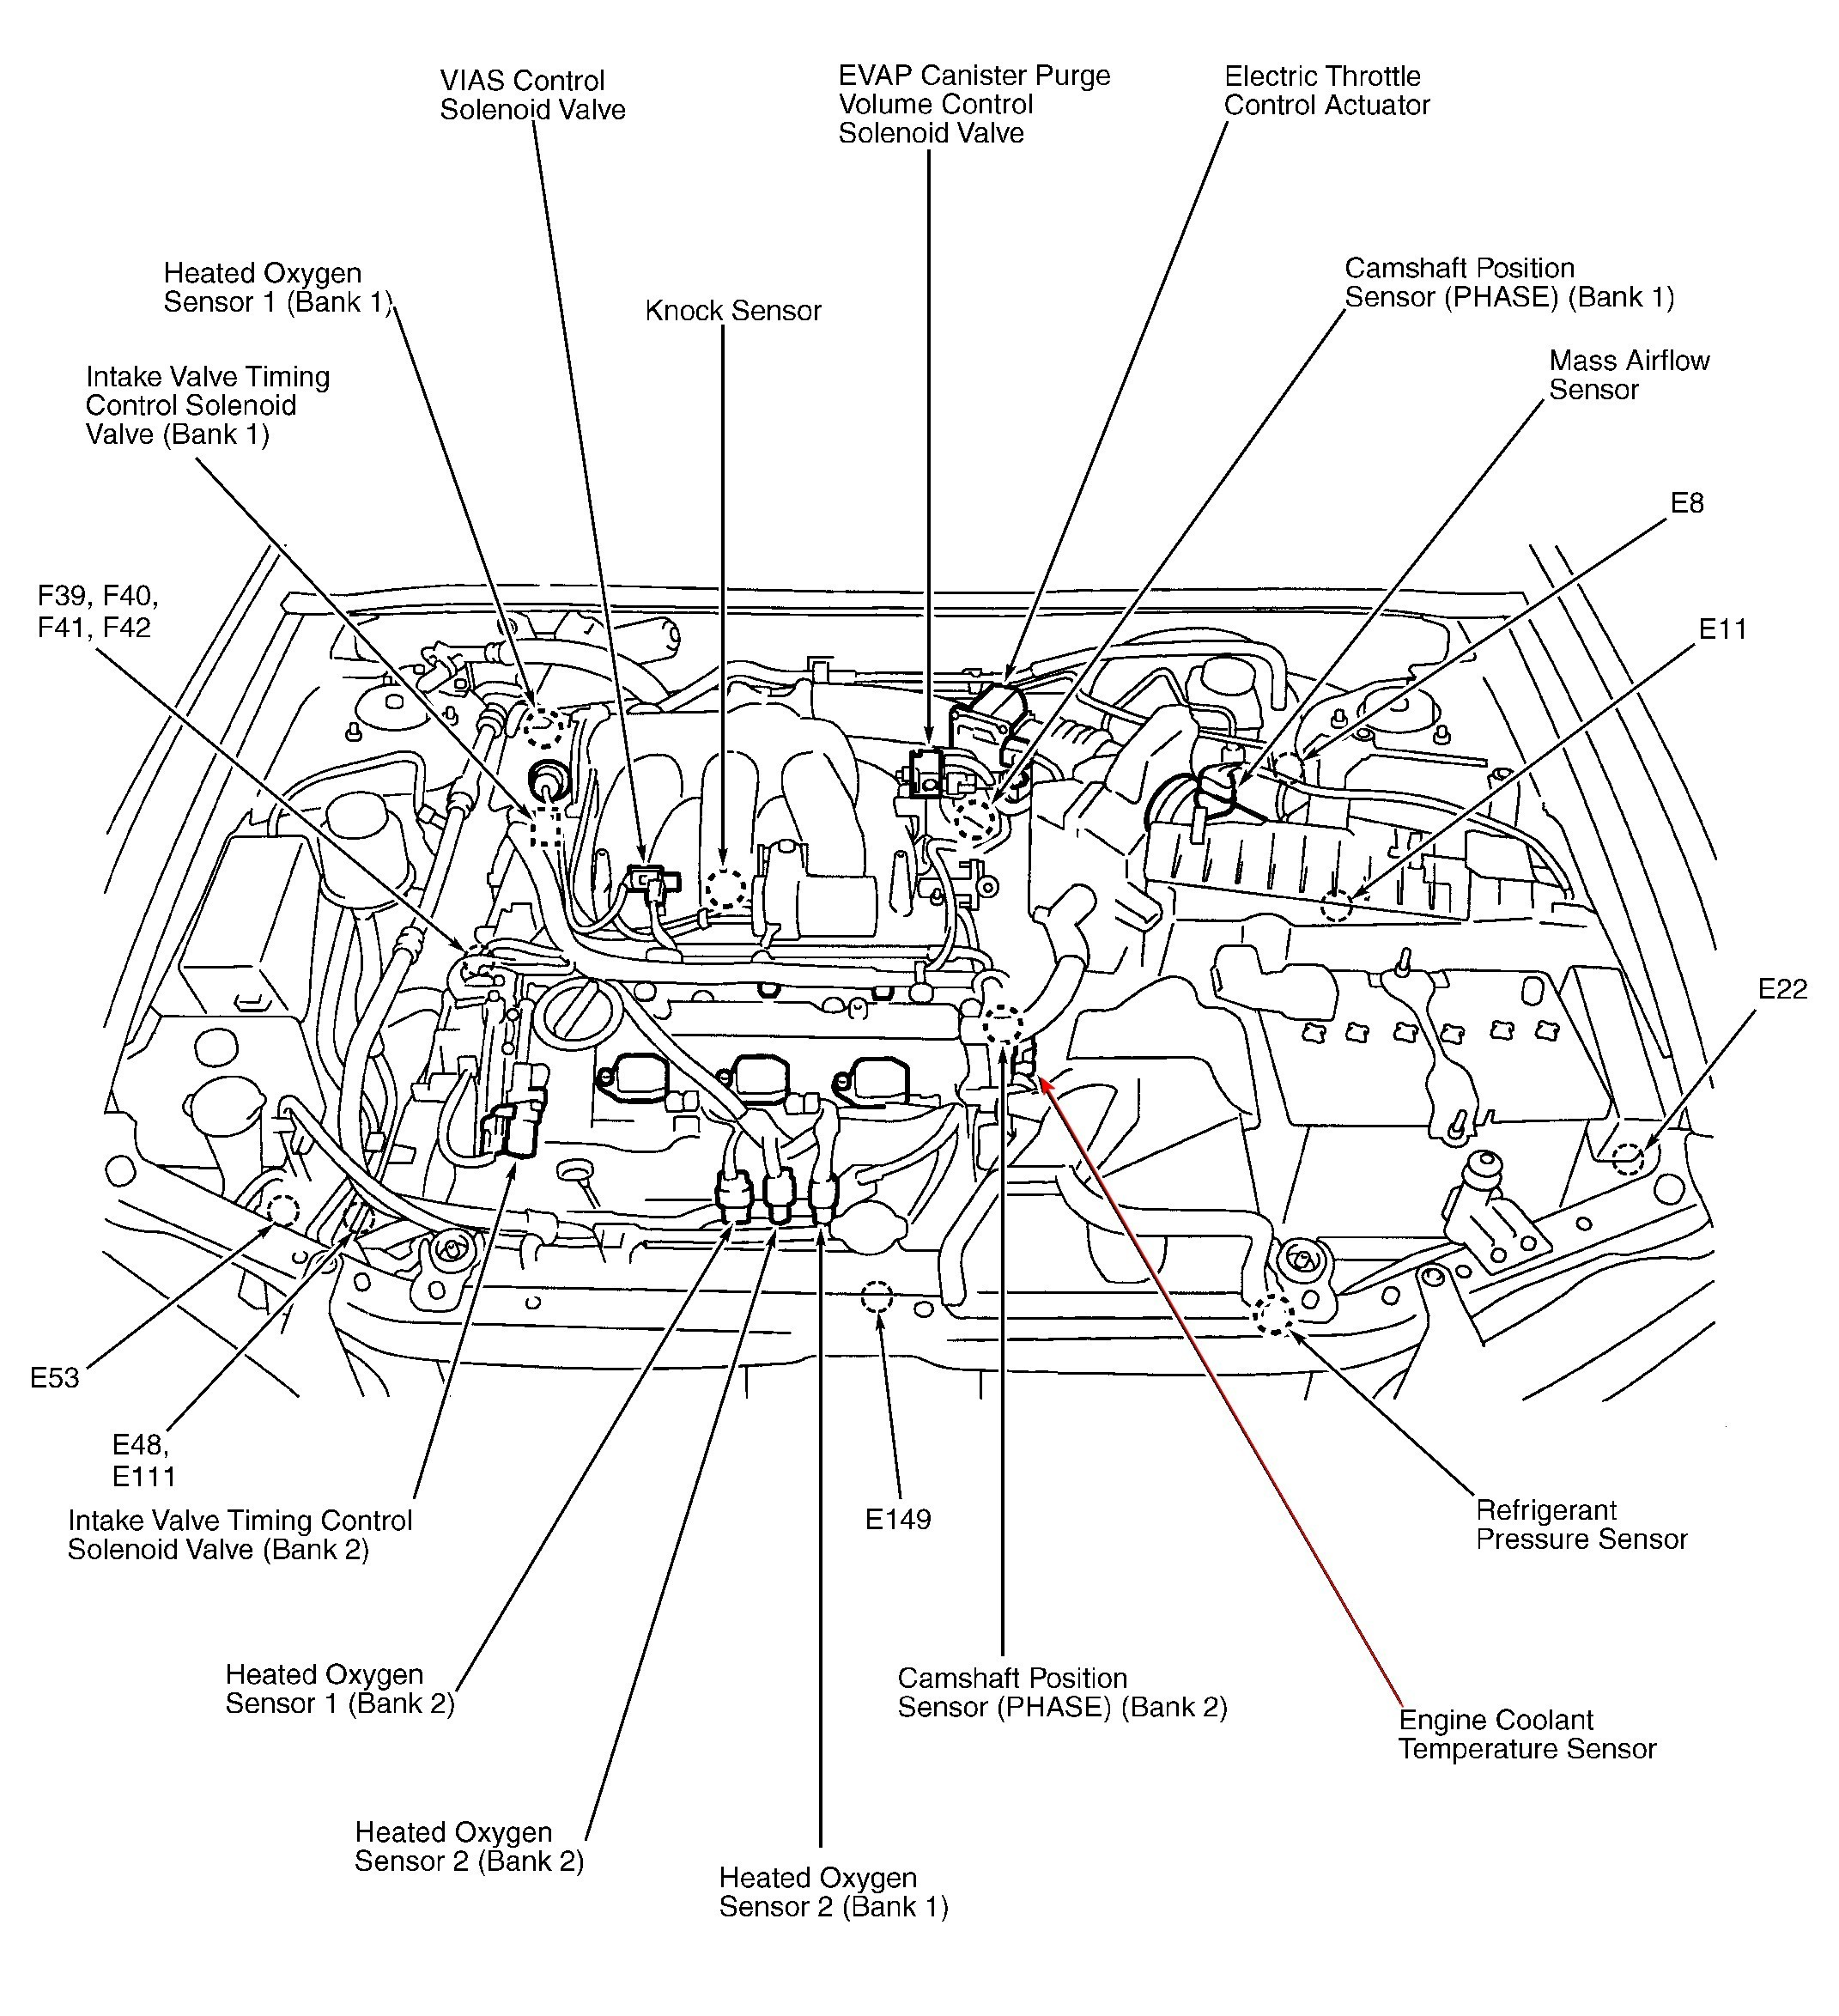 hight resolution of wiring diagram as well 1989 jeep cherokee vacuum line diagram jeep cj7 vacuum diagram as well jeep grand cherokee fuel line diagram